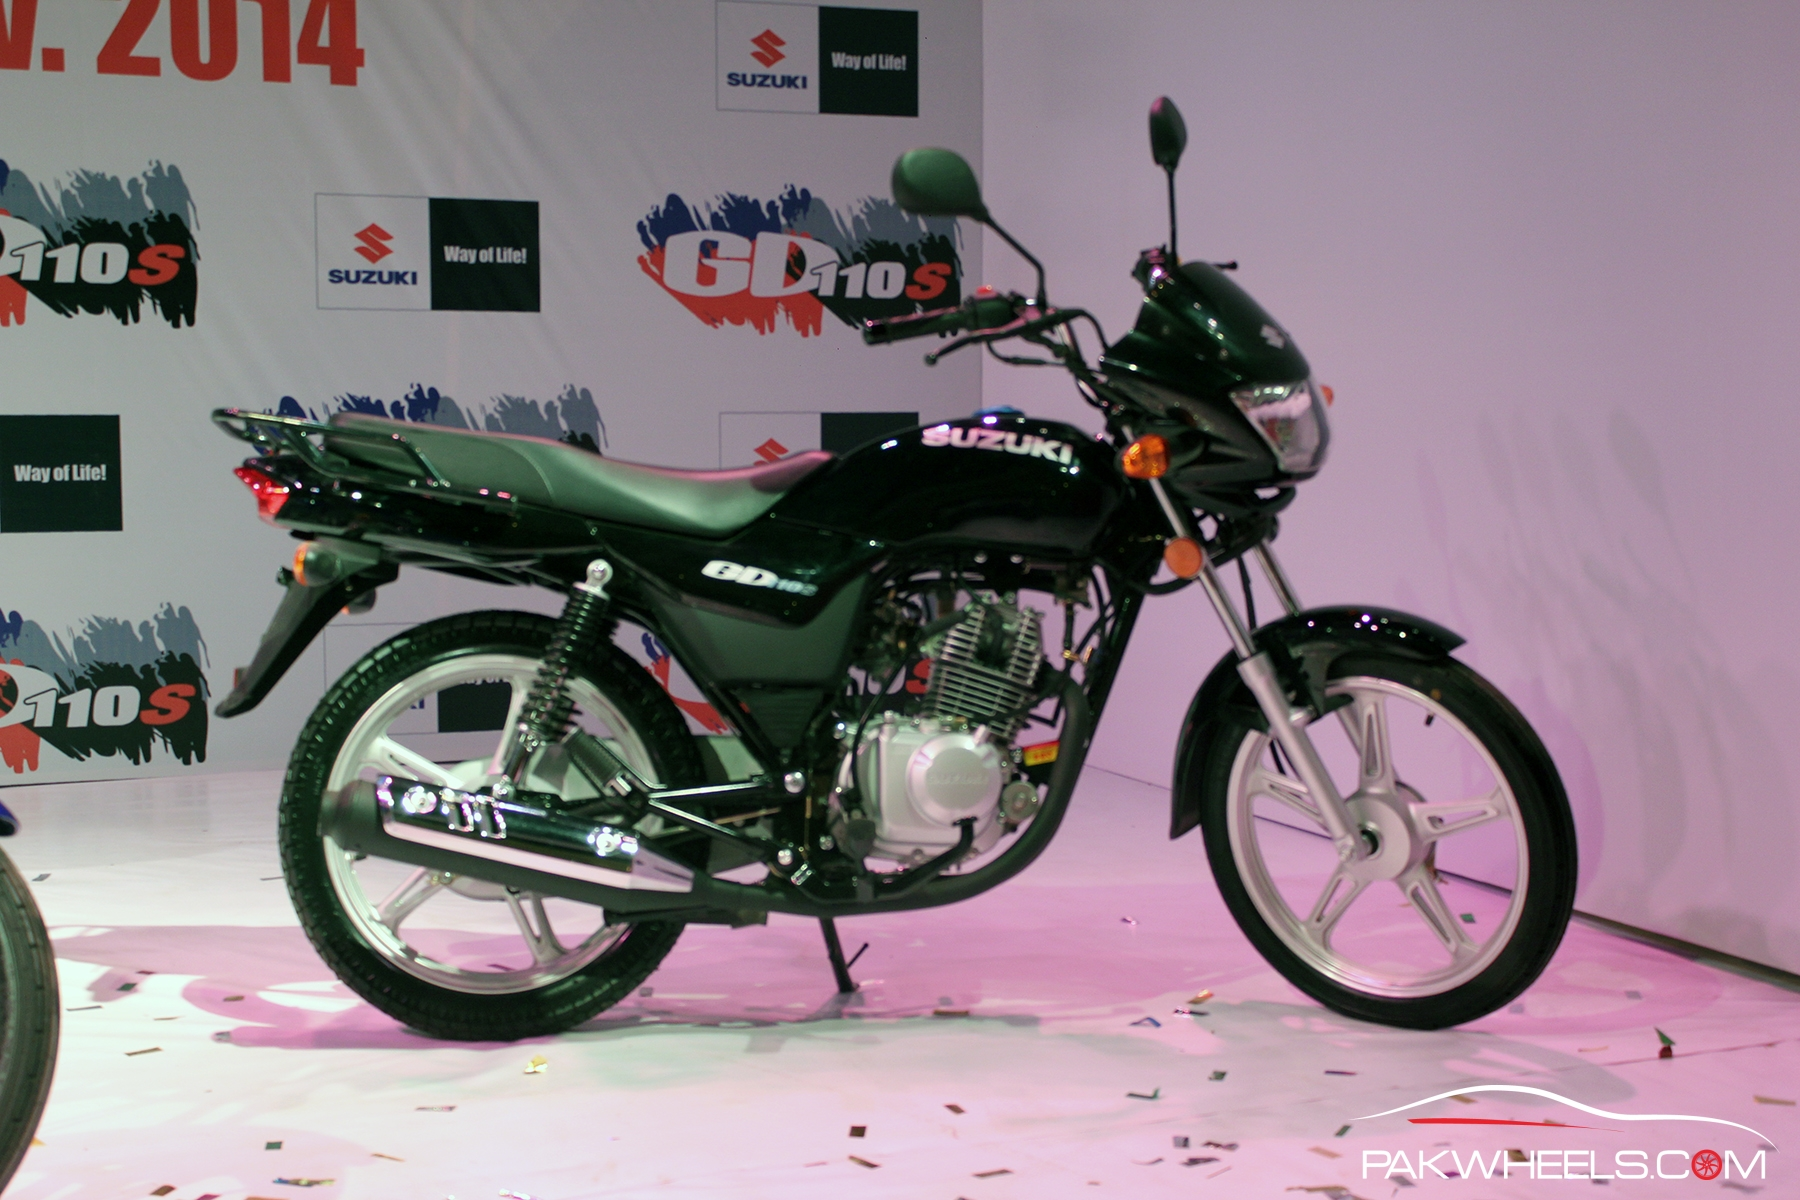 Permalink to Suzuki Bike New Model 2014